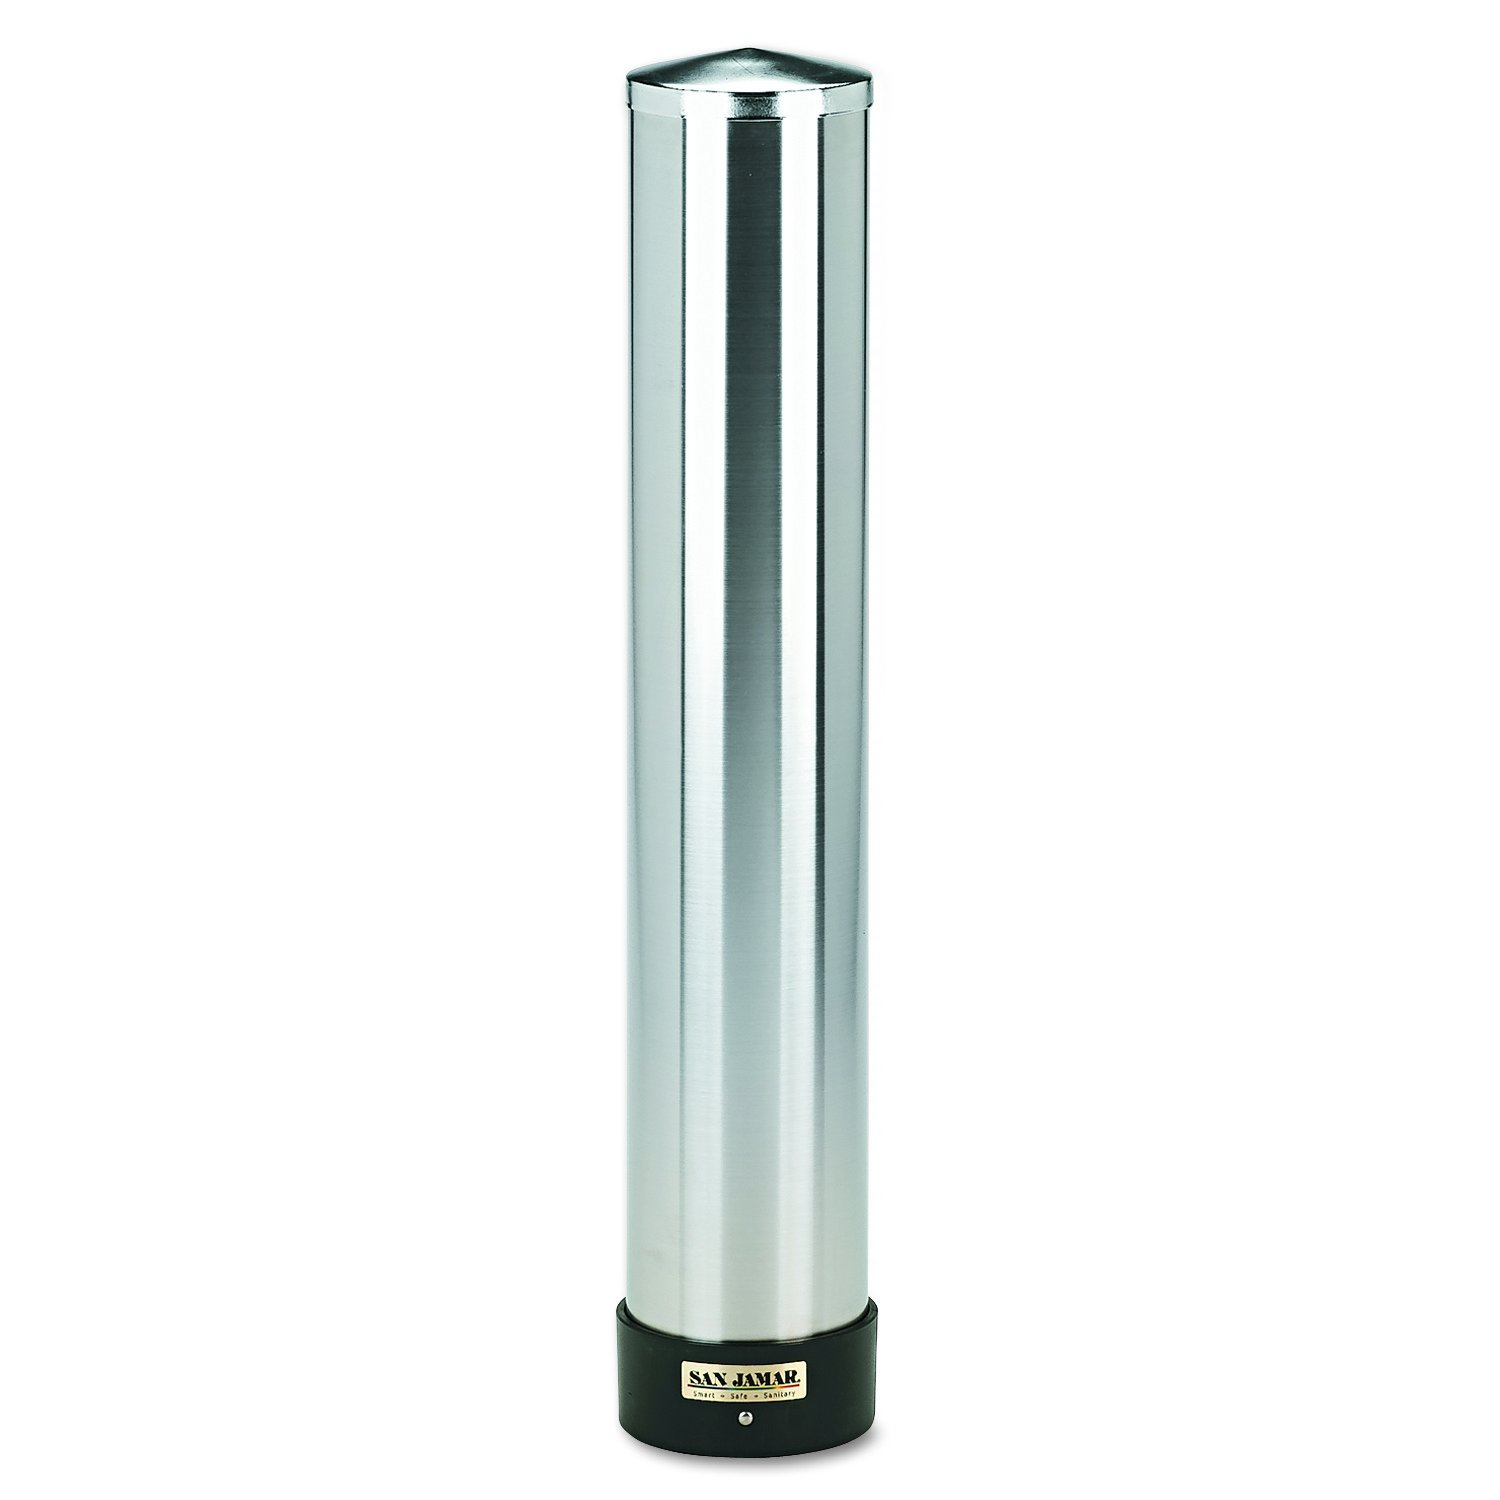 San Jamar C3400P 12-24 oz Stainless Steel Pull Type Beverage Cup Dispenser with Removable Cap